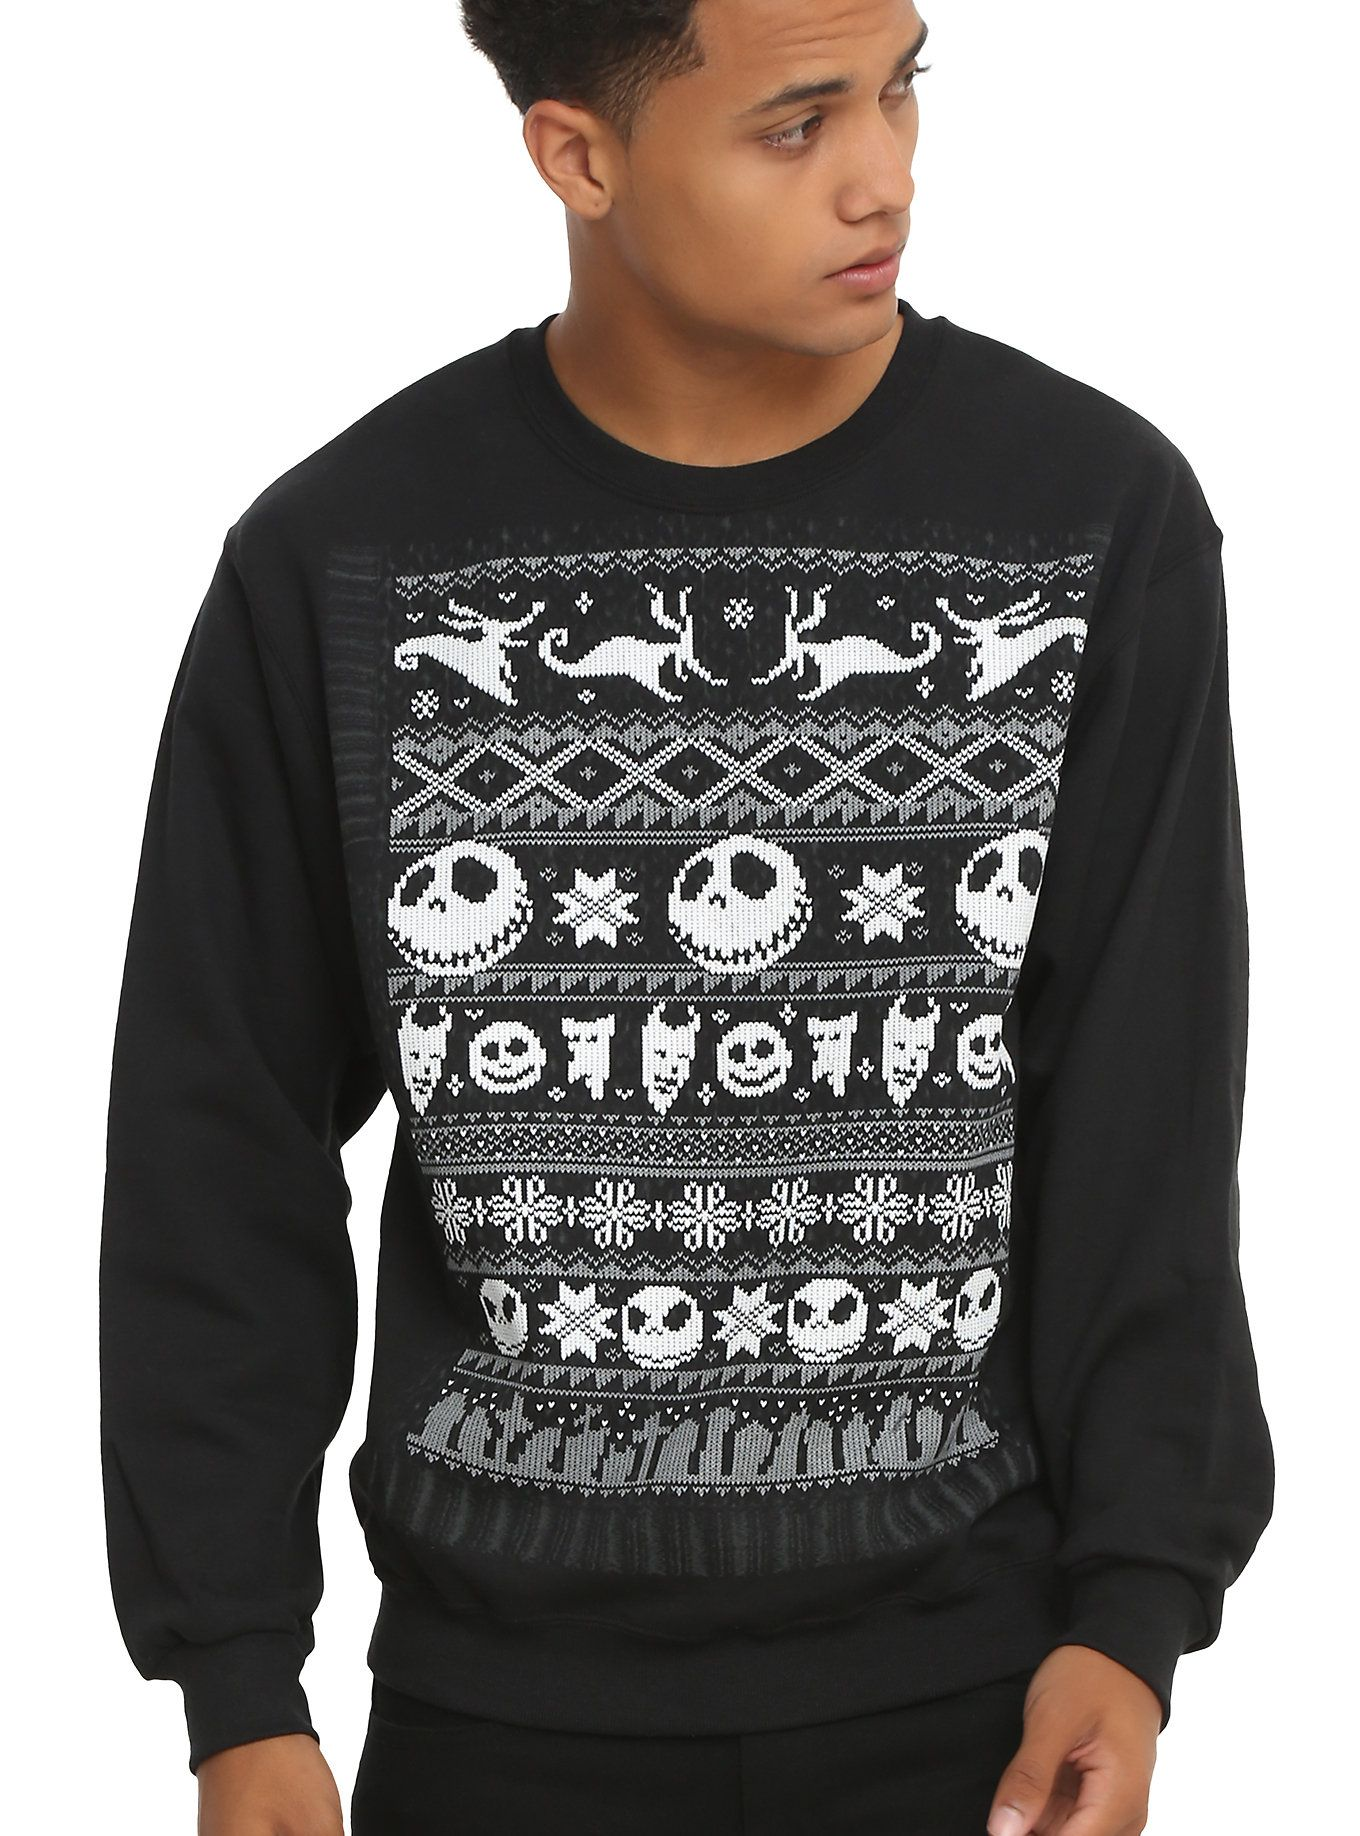 http://www.hottopic.com/product/the-nightmare-before-christmas ...